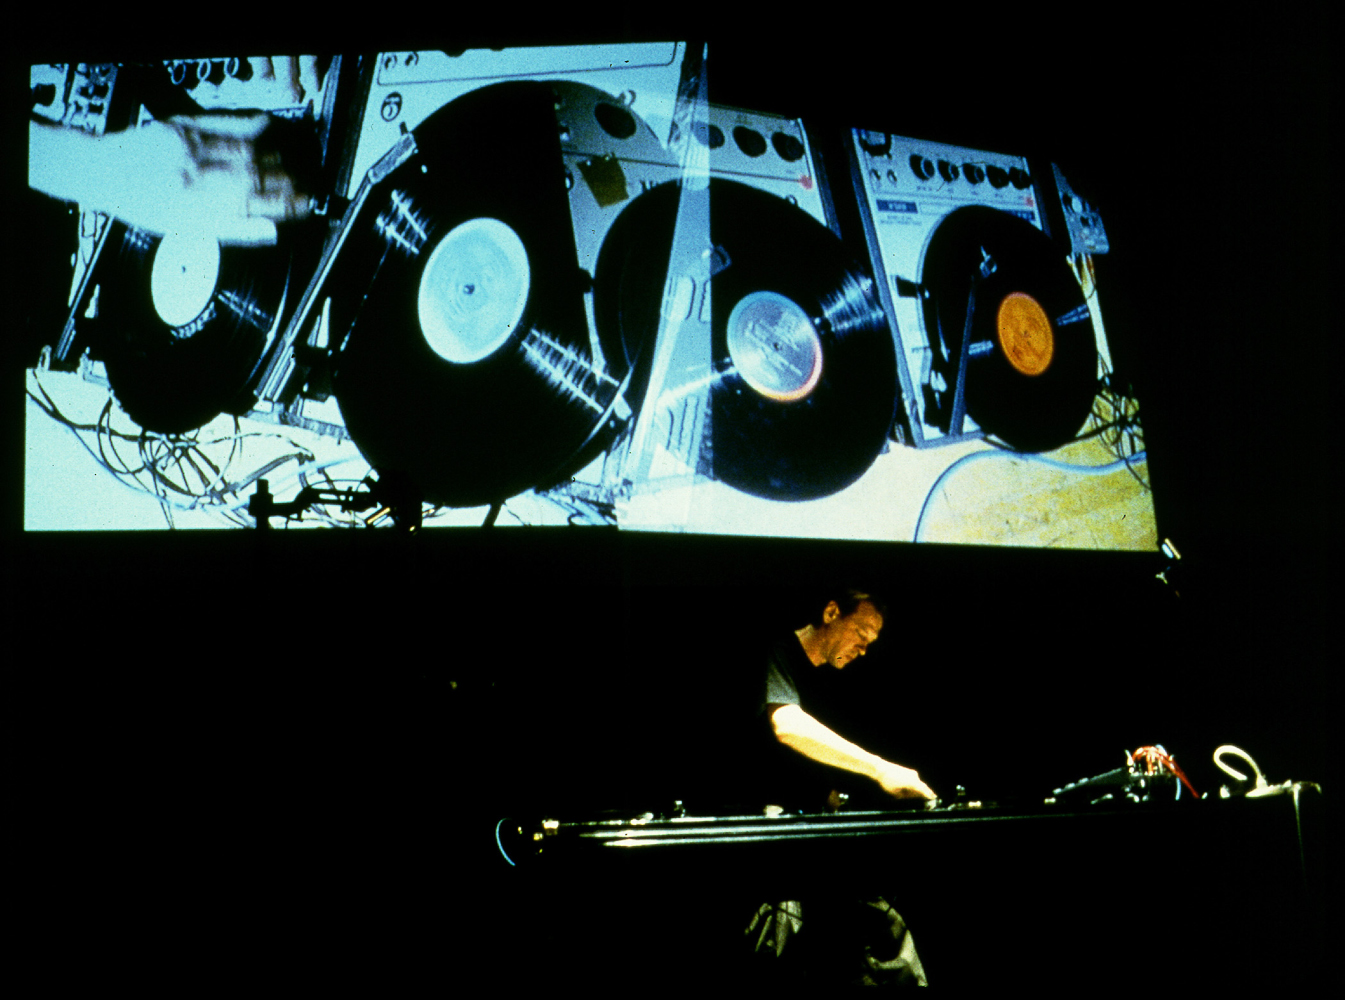 Christian Marclay performing, 1999, Festival Agora, IRCAM, Paris.                                                              A pioneer of the turntablist movement, Marclay's performative work has involved active mixing of sound through the use of turntables. His live performance transcends the latitude of just an auditory experience—as they frequently involve unconventional means of creating sound, such wearing the turntable on his body.